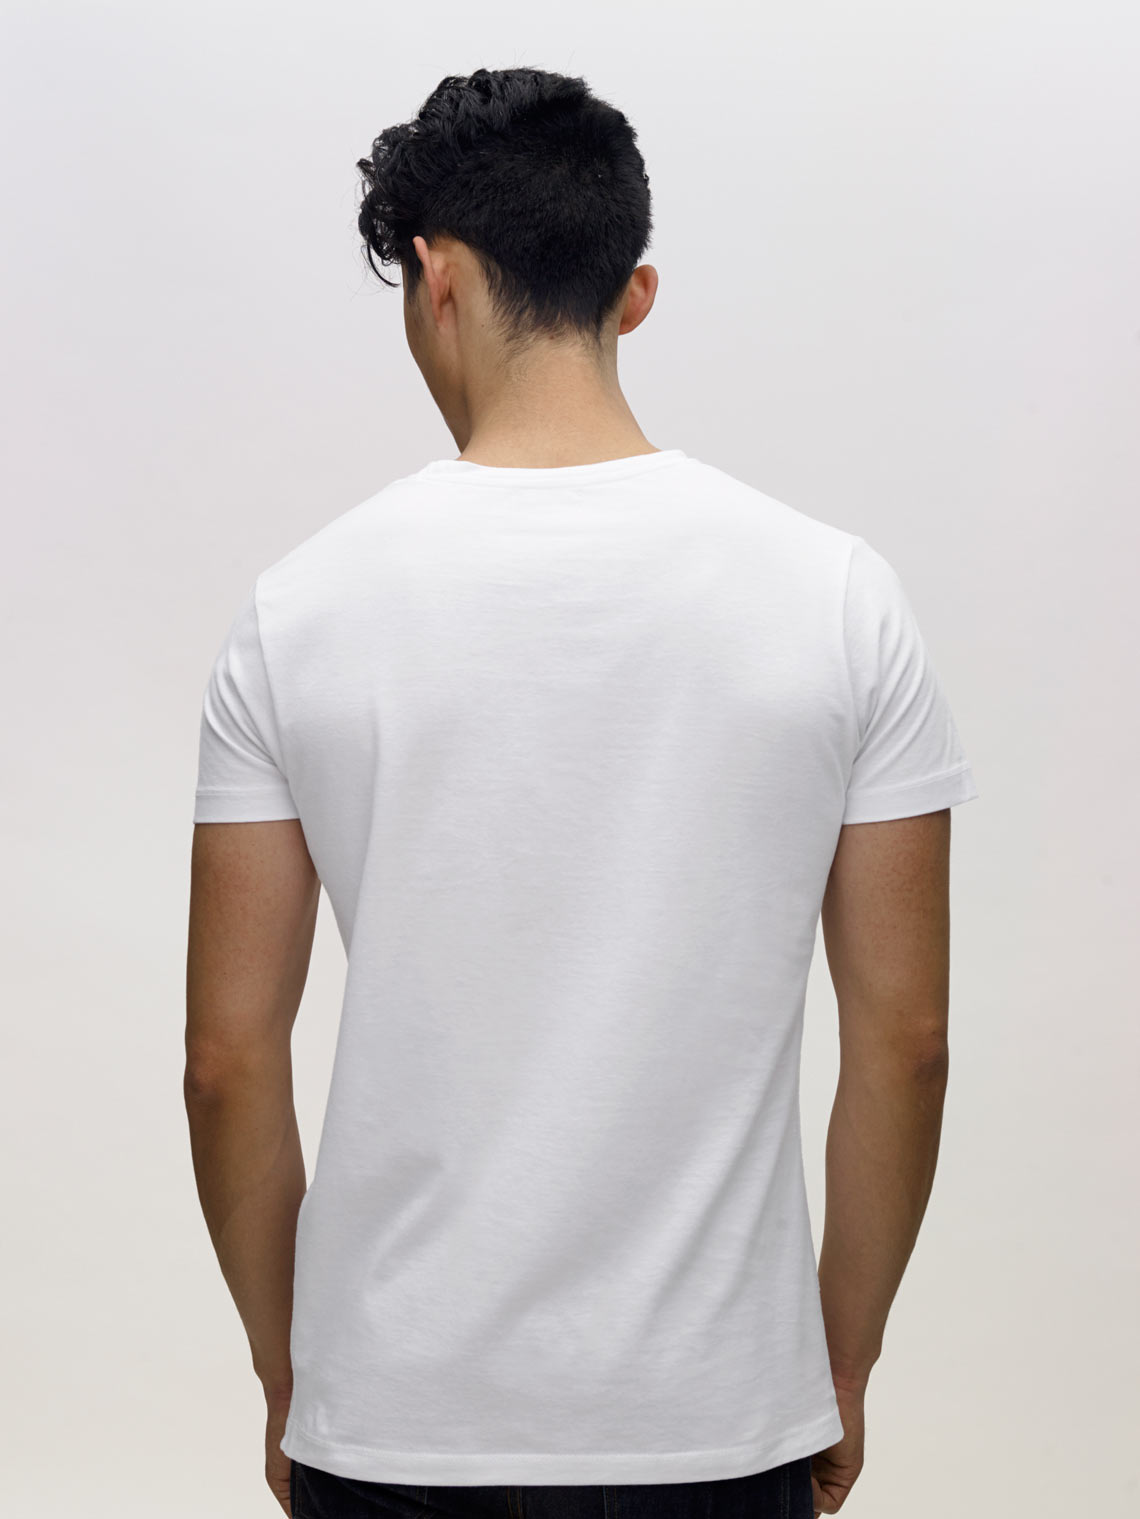 Product Shot of the The Crew in White